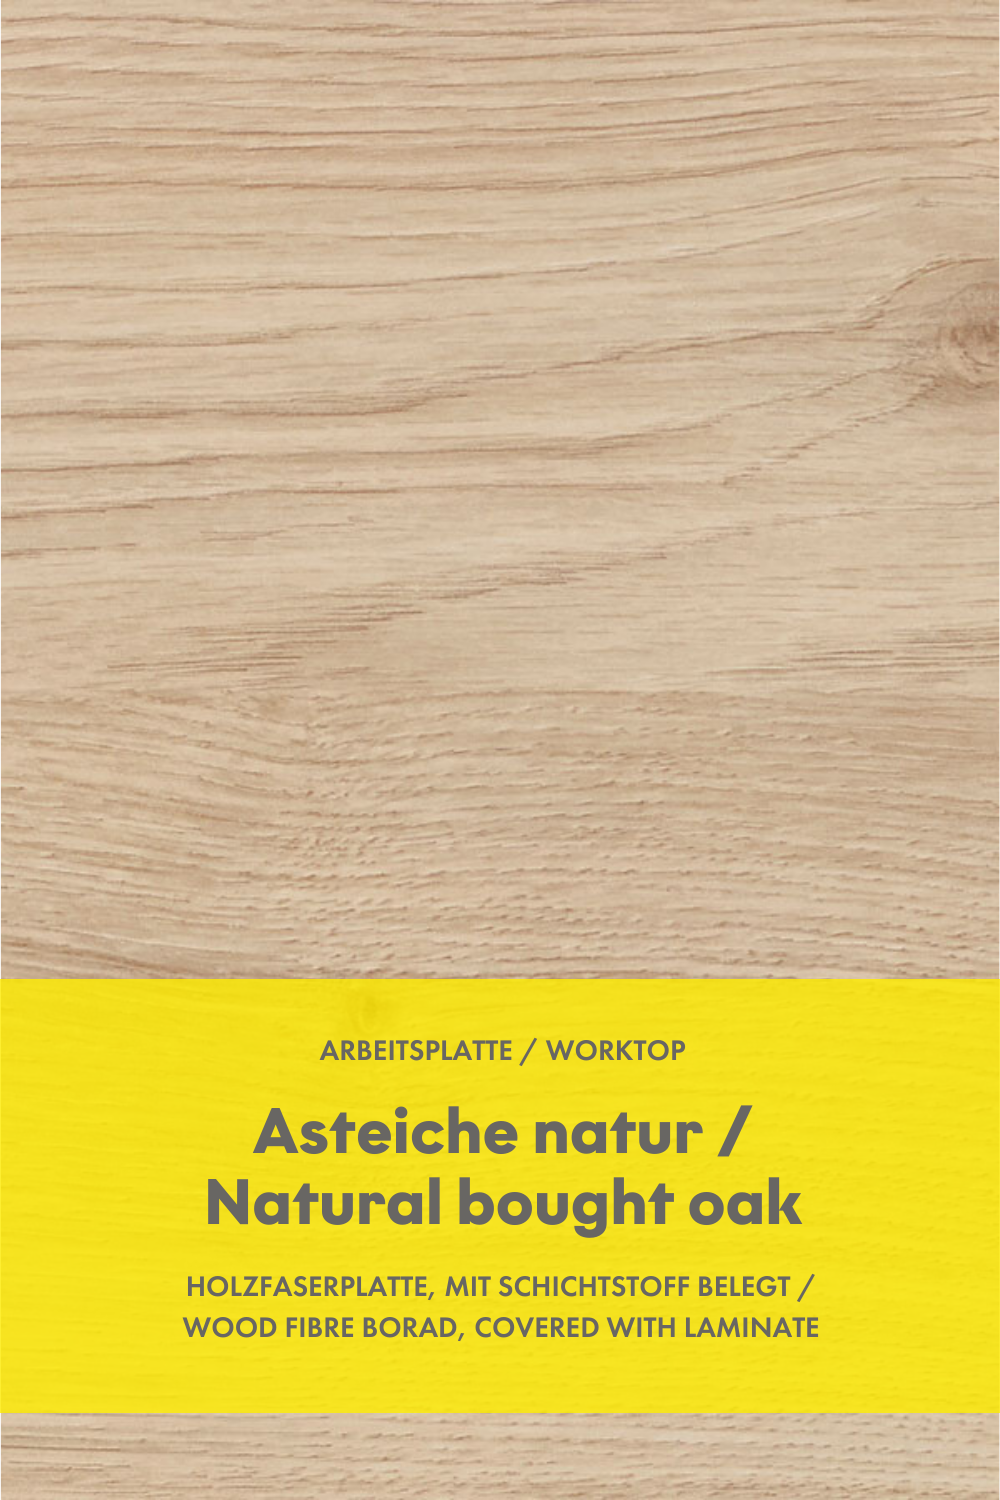 Kuchen Arbeitsplatte Asteiche Natur Kitchen Worktop Natural Bought Oak In 2020 Kitchen Design Kitchen Worktop Open Plan Kitchen